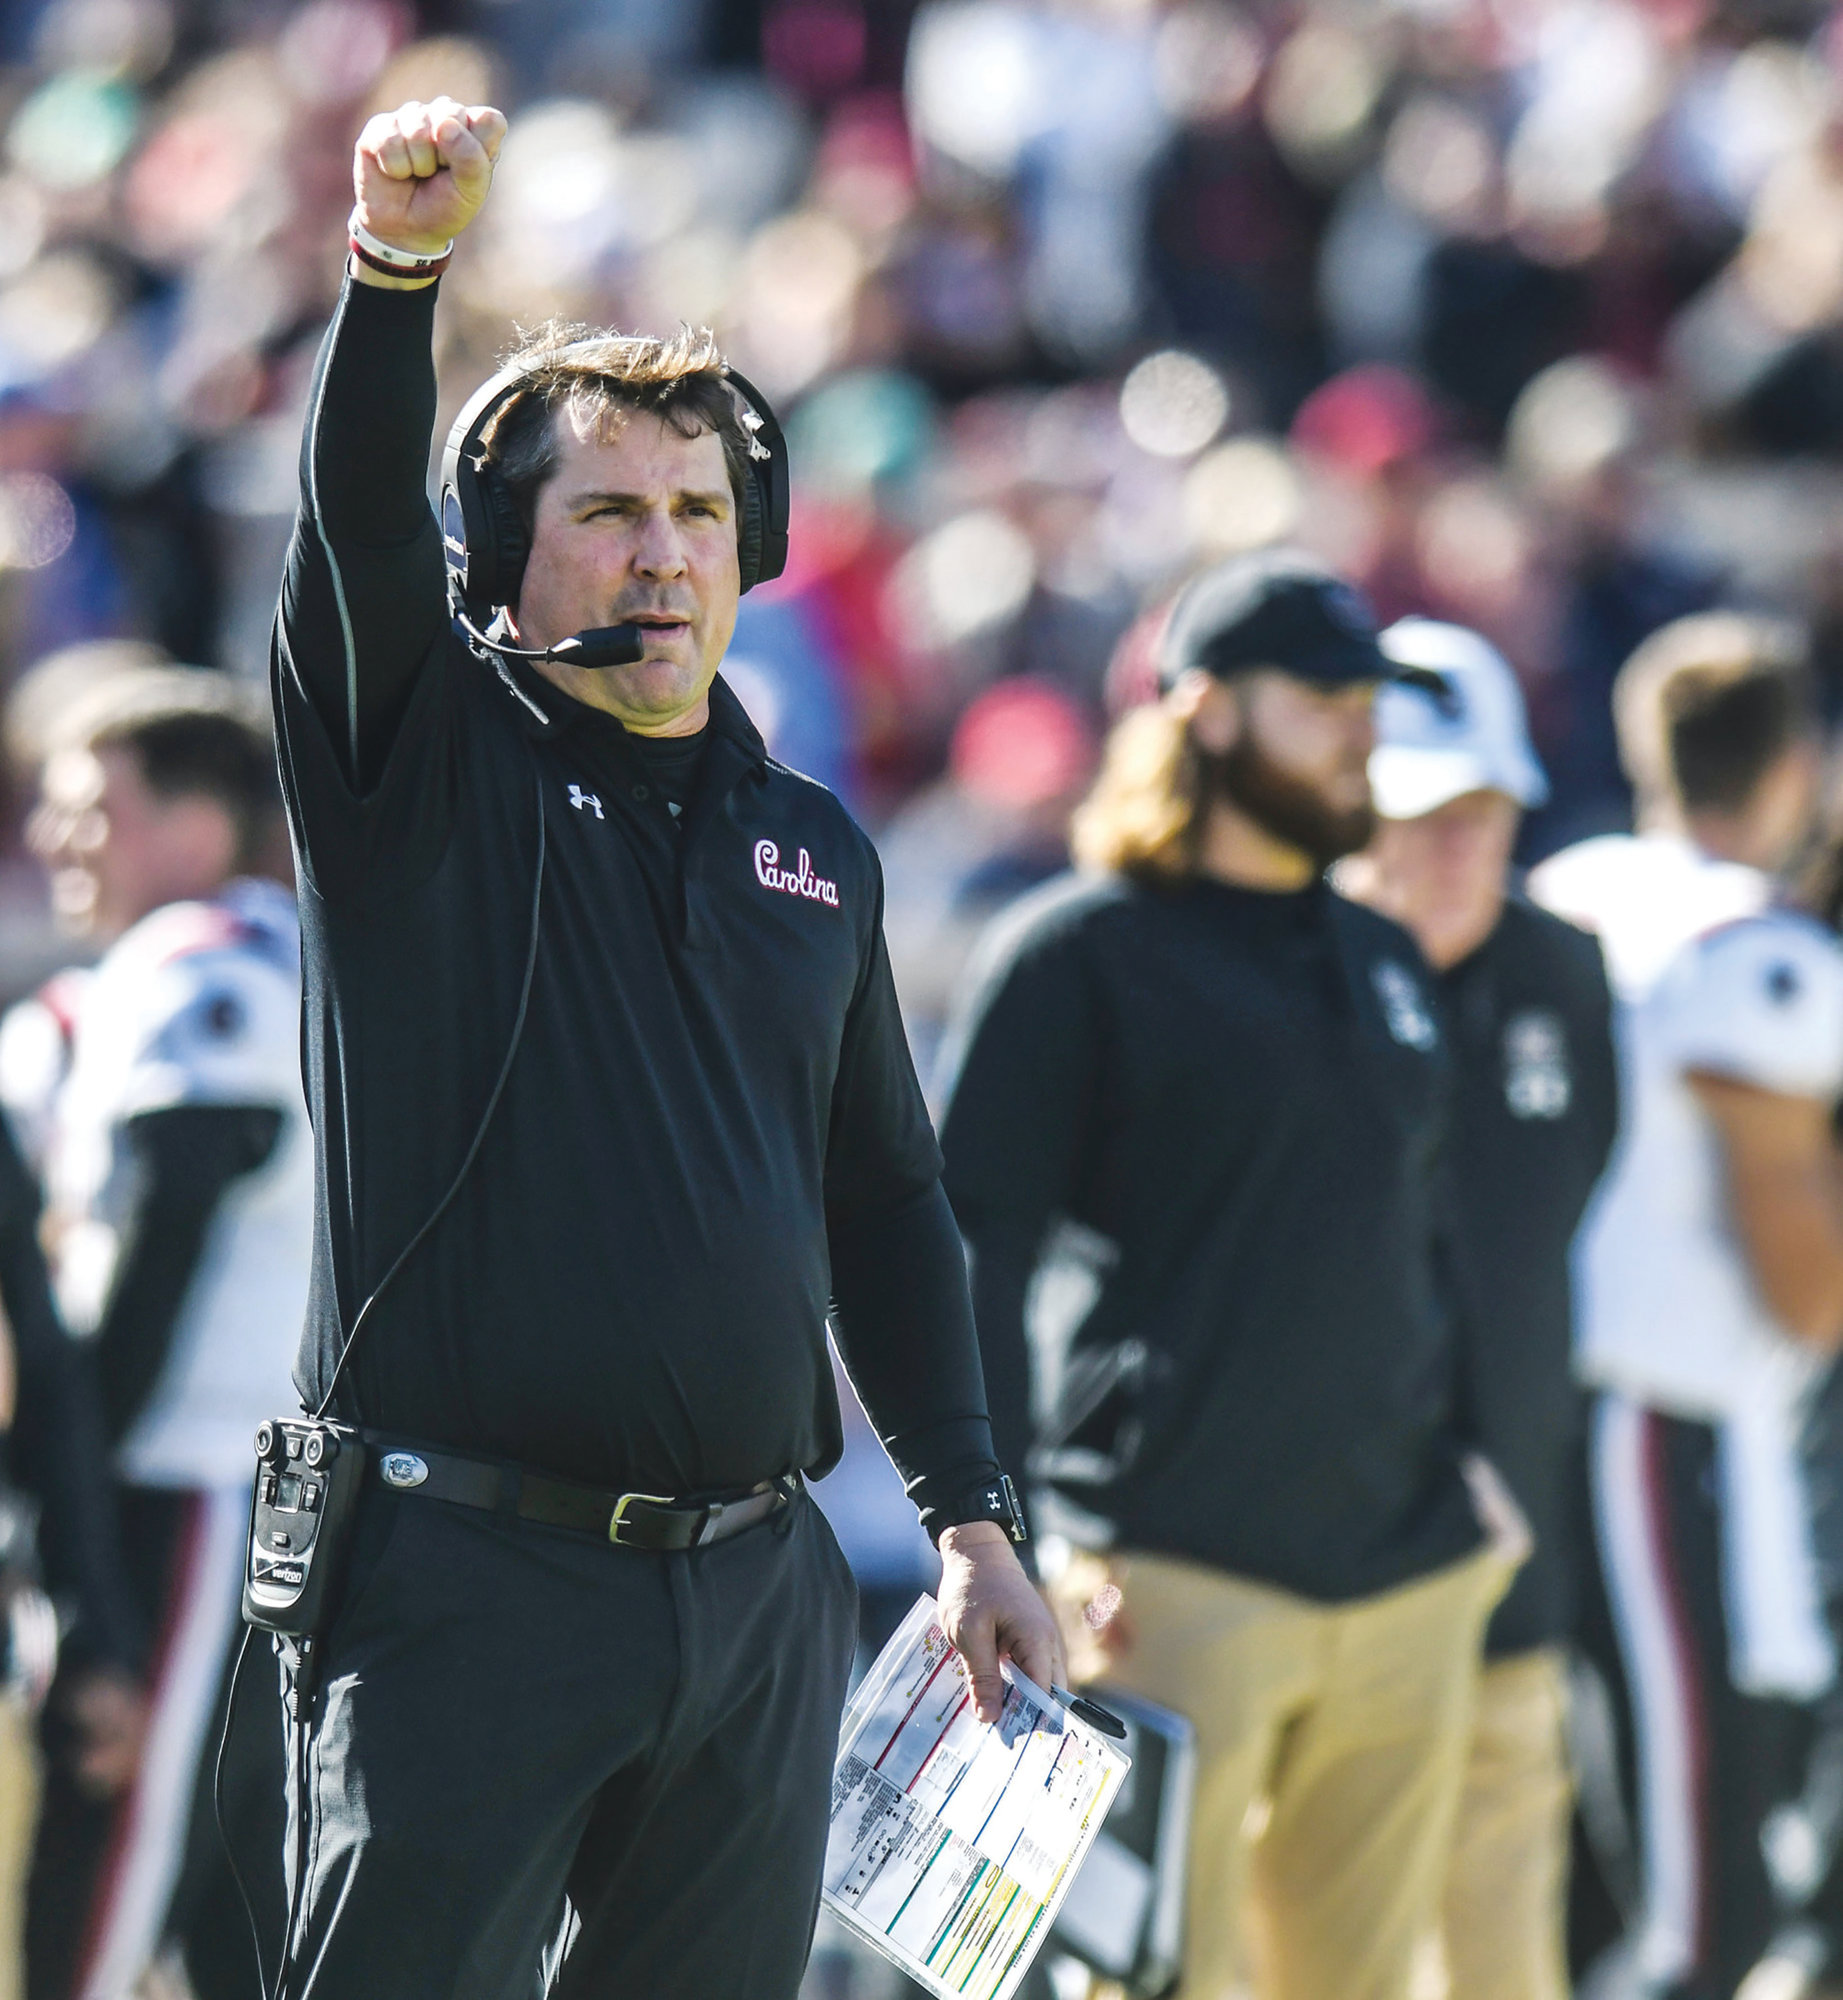 South Carolina head coach Will Muschamp knows he has a team that has plenty of questions to answer heading into the 2019 season.